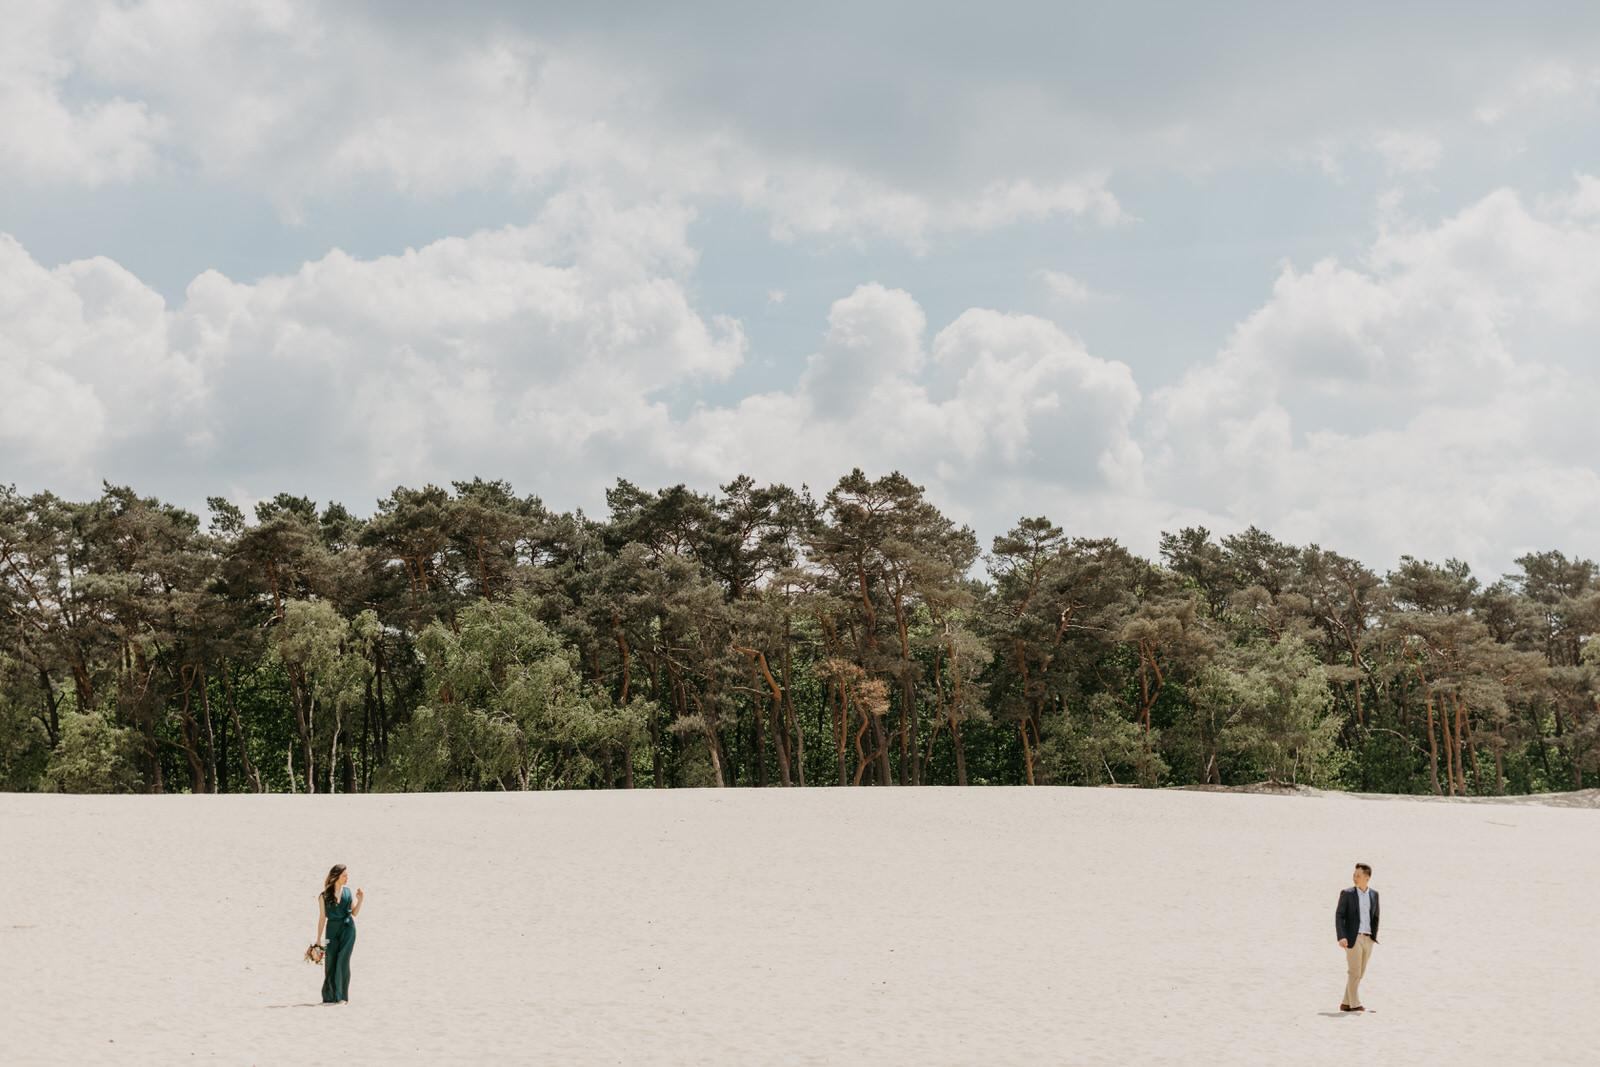 Engagement photo Enchanting Couple Love Portrait Session in the Desert of Holland Loonse en Drunense Duinen National Park Netherlands Rotterdam Cliff Choong Photography Malaysia Destination Wedding Photographer